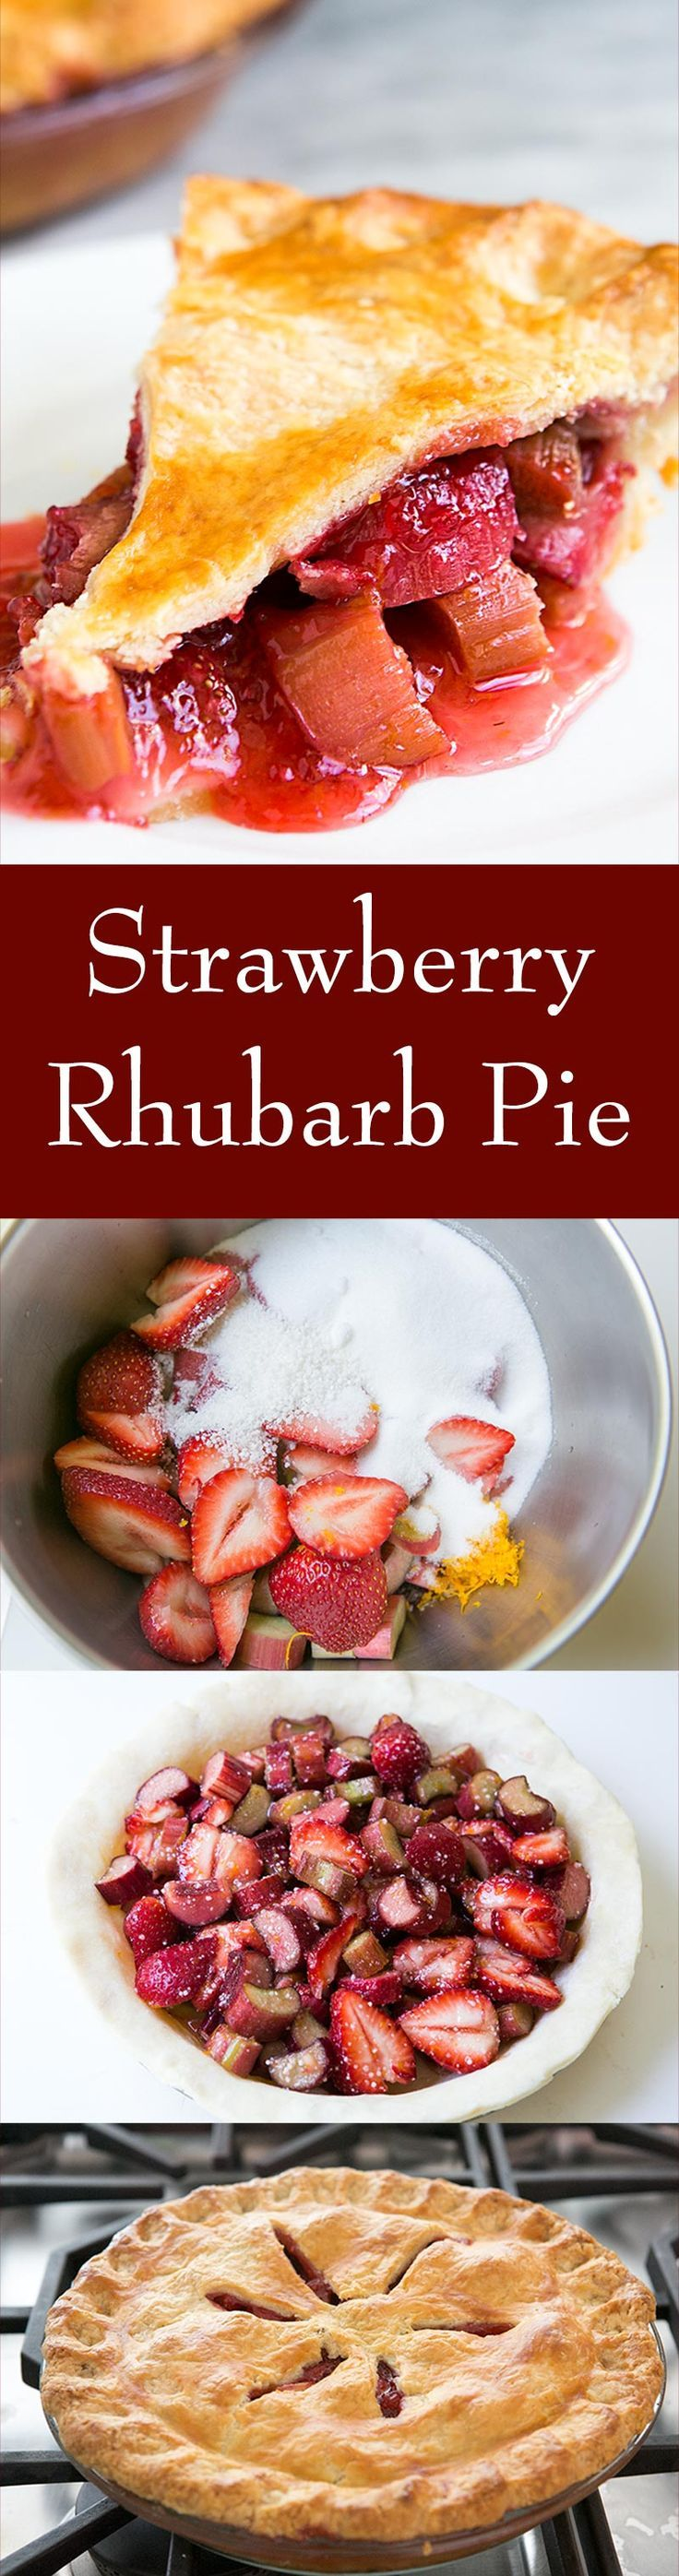 The BEST Strawberry Rhubarb Pie recipe! Sweet fresh strawberries paired with tart rhubarb and a hint of orange zest. On SimplyRecipes.com (Best Cake Strawberry)